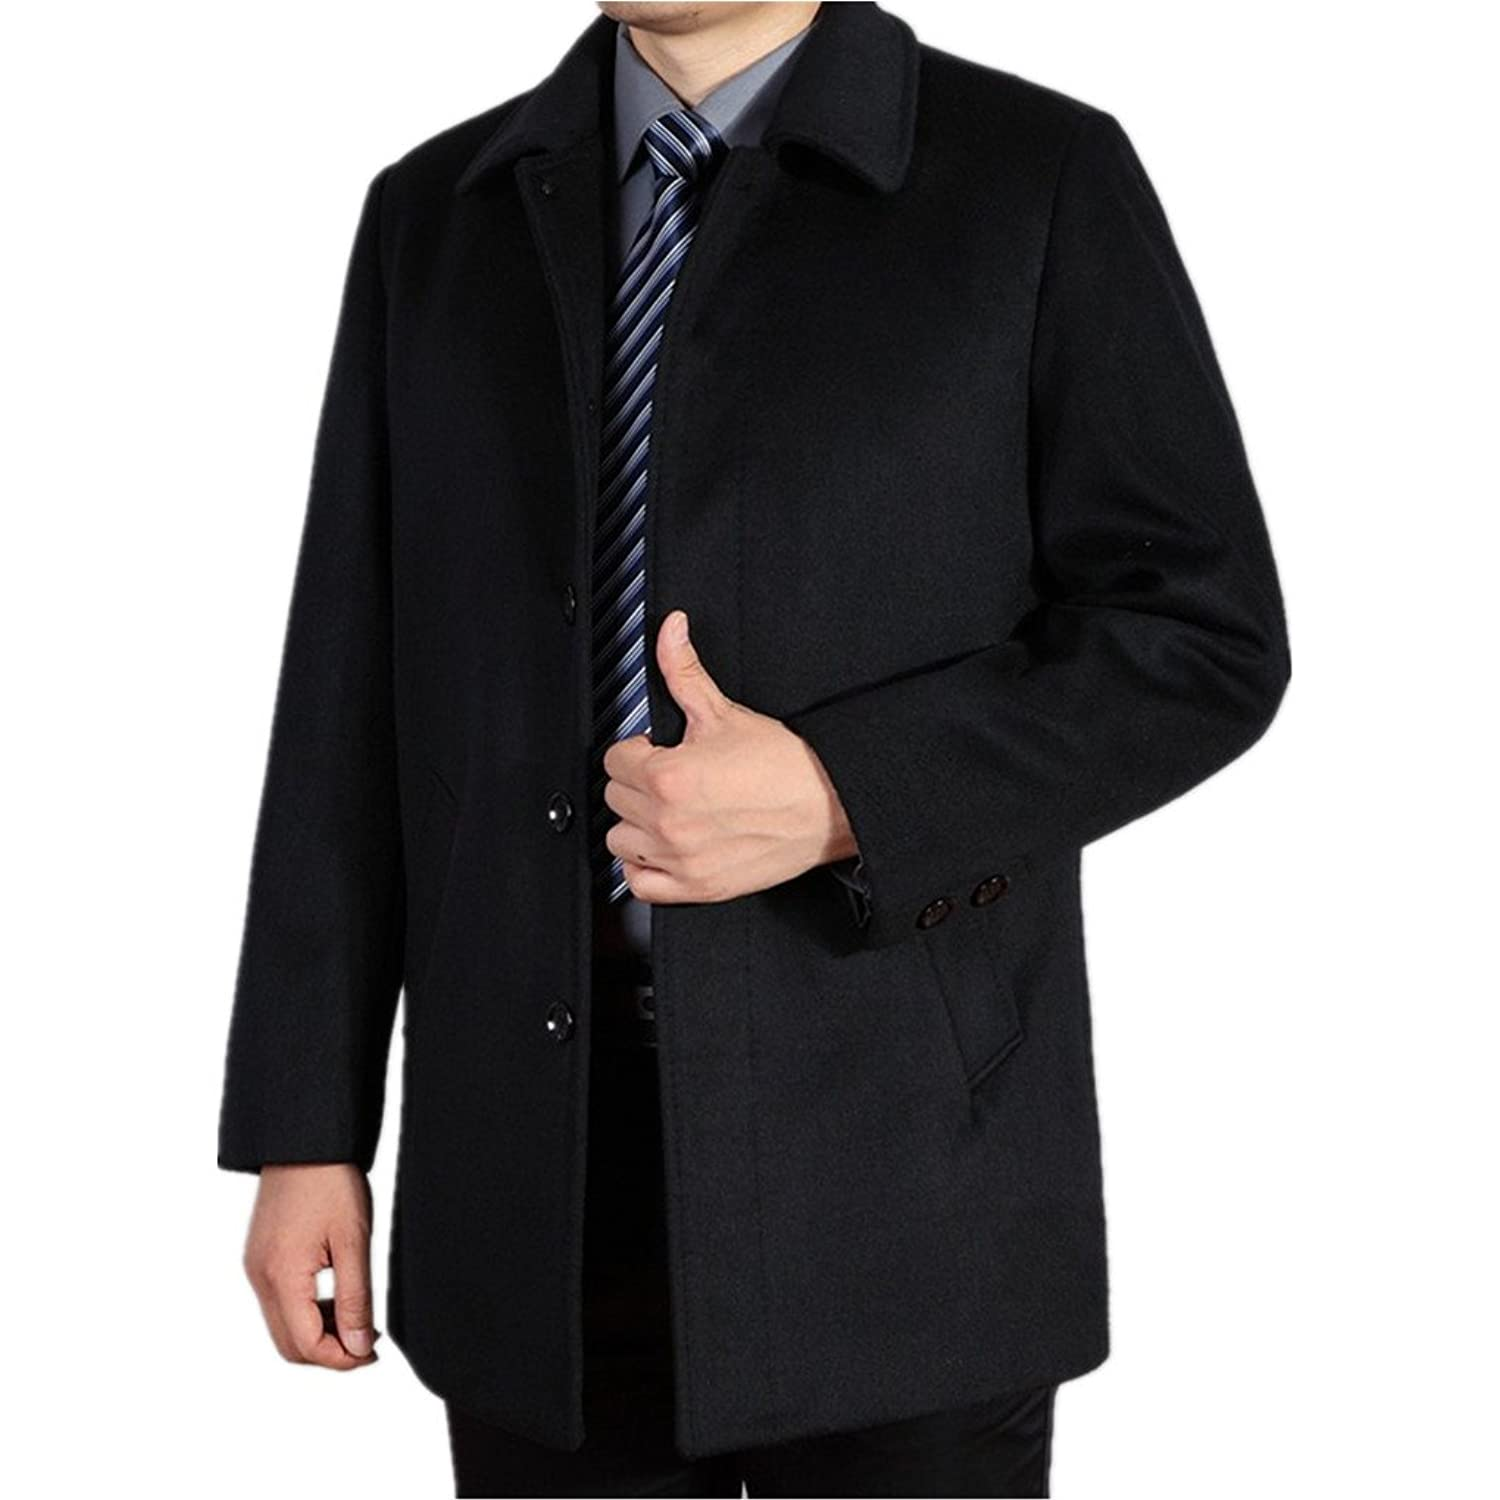 Men Wool Coat Medium-Long Male Thickening Cashmere Larrge Outerwear at Amazon Mens Clothing store: